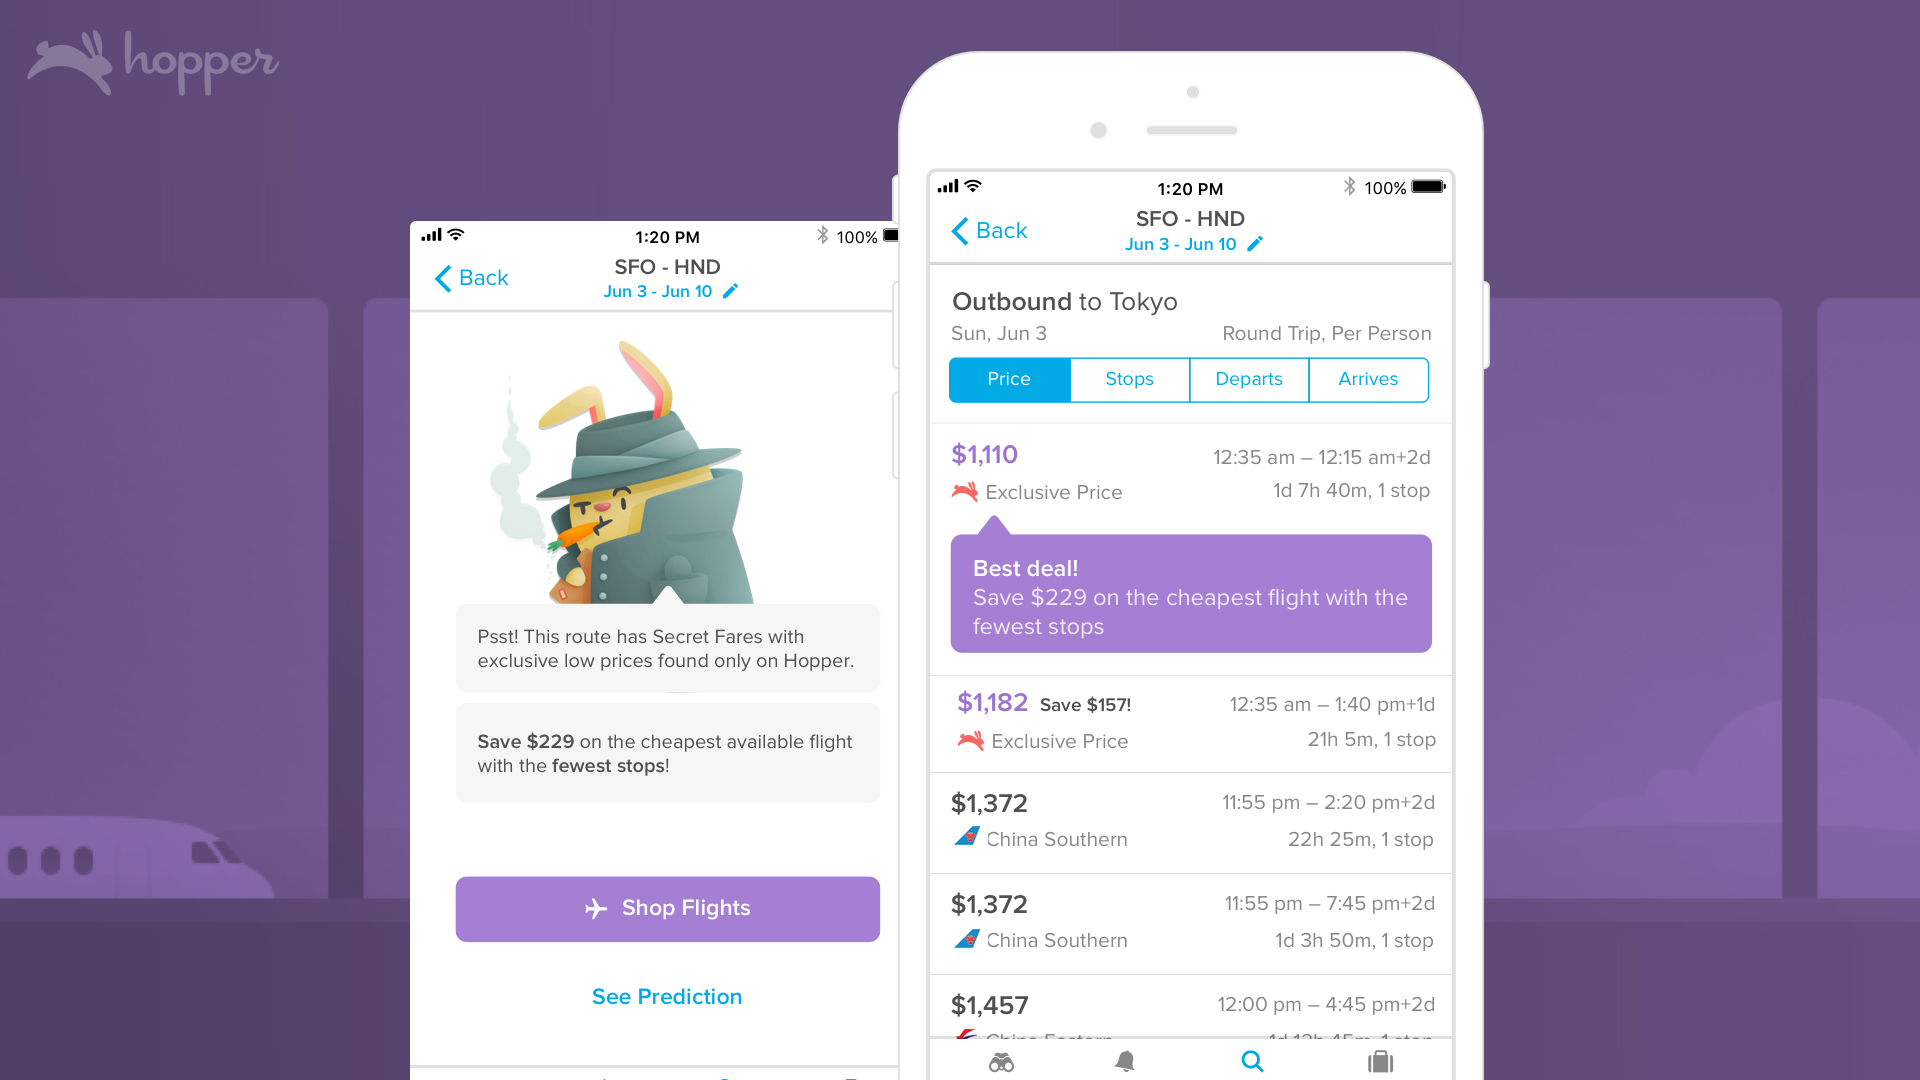 From Hopper, Exclusive Flight Deals Sent Directly to Phones